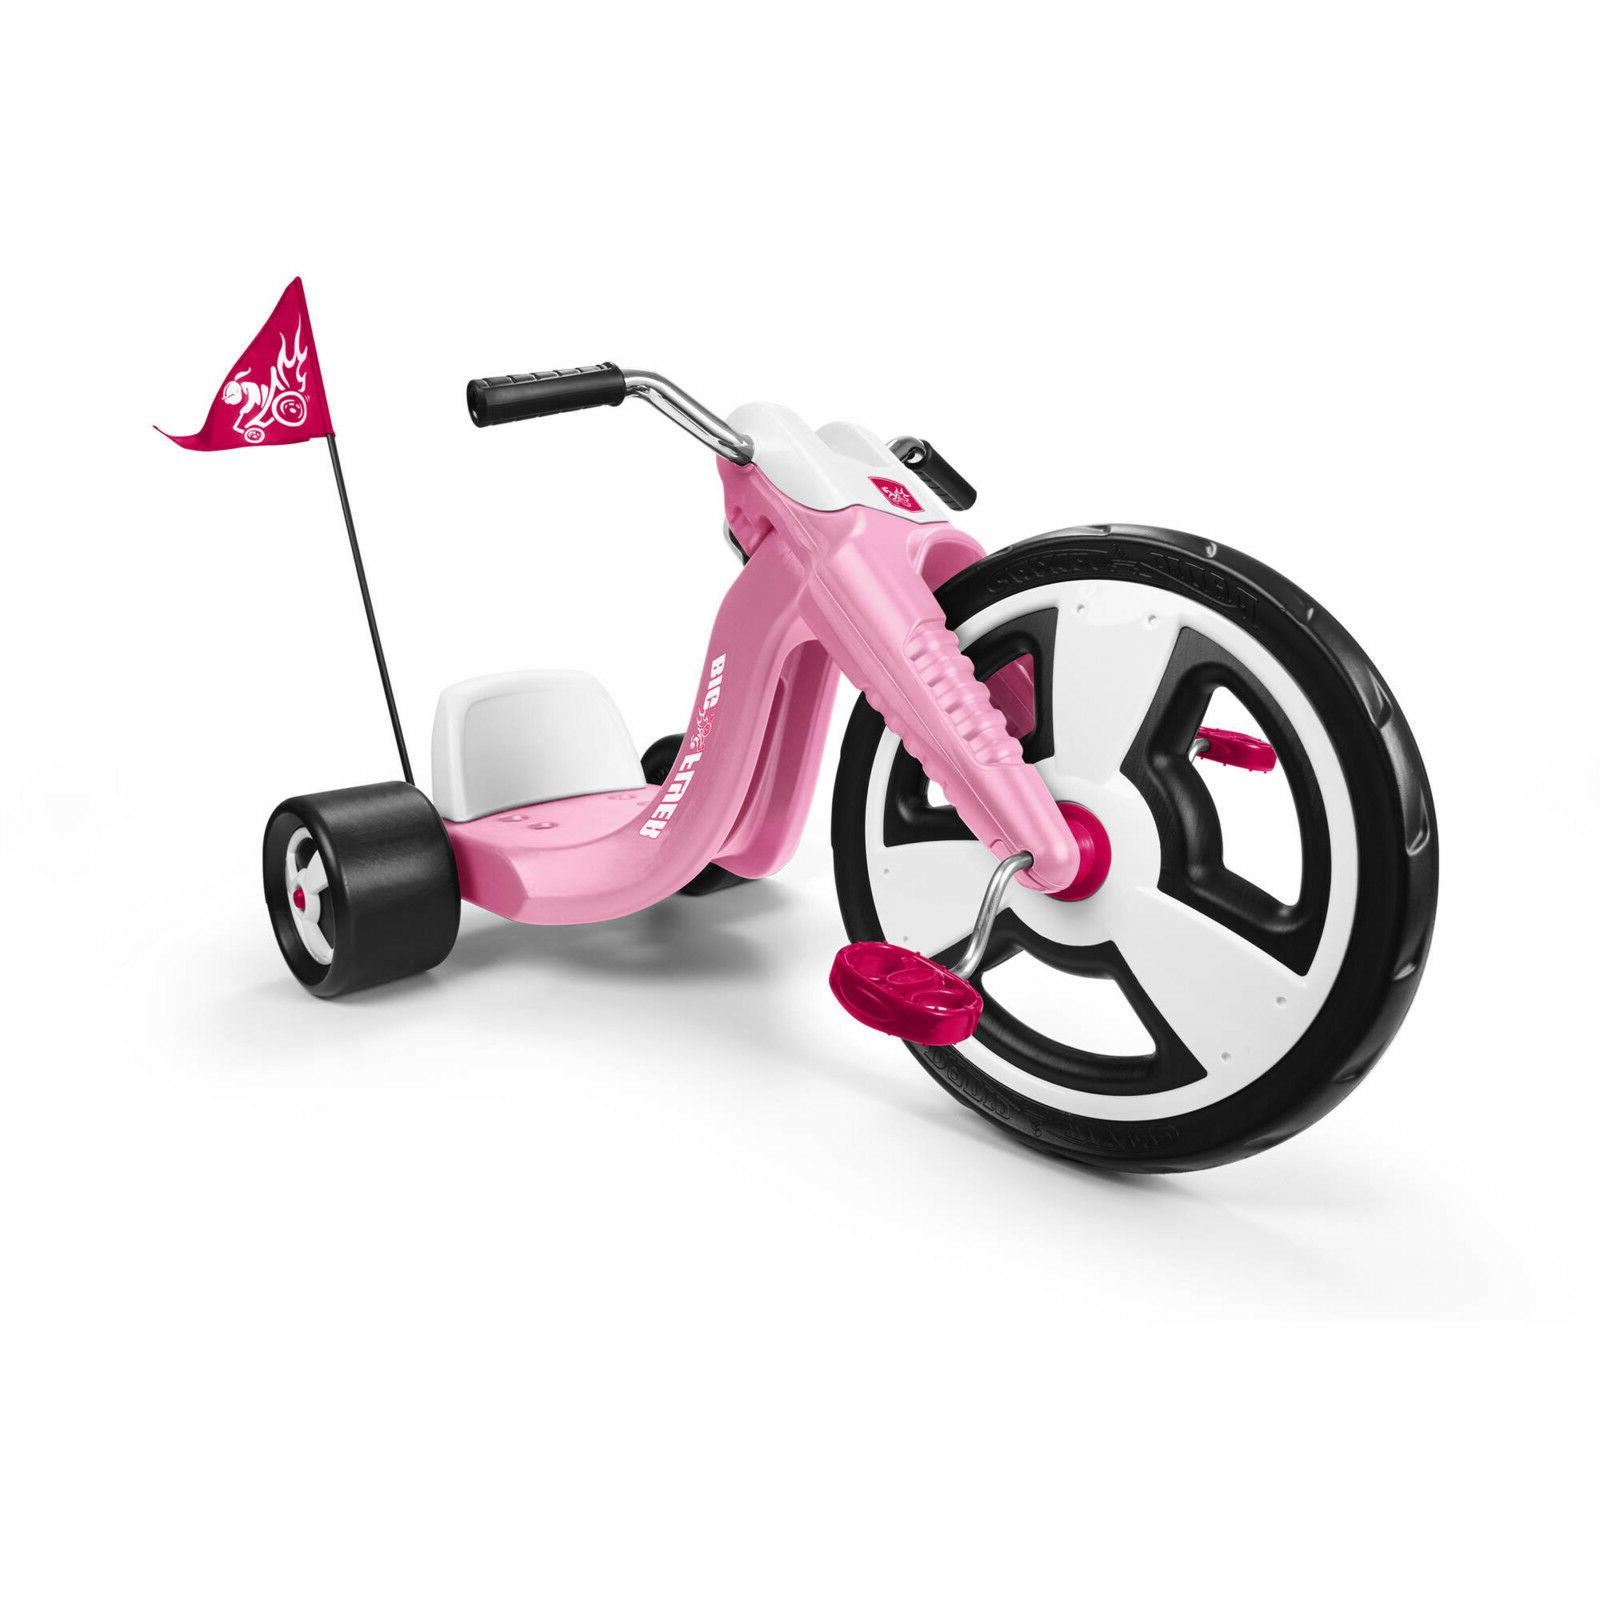 Kids Big Tricycle Front Adjustable Seat Sports Toy Pink